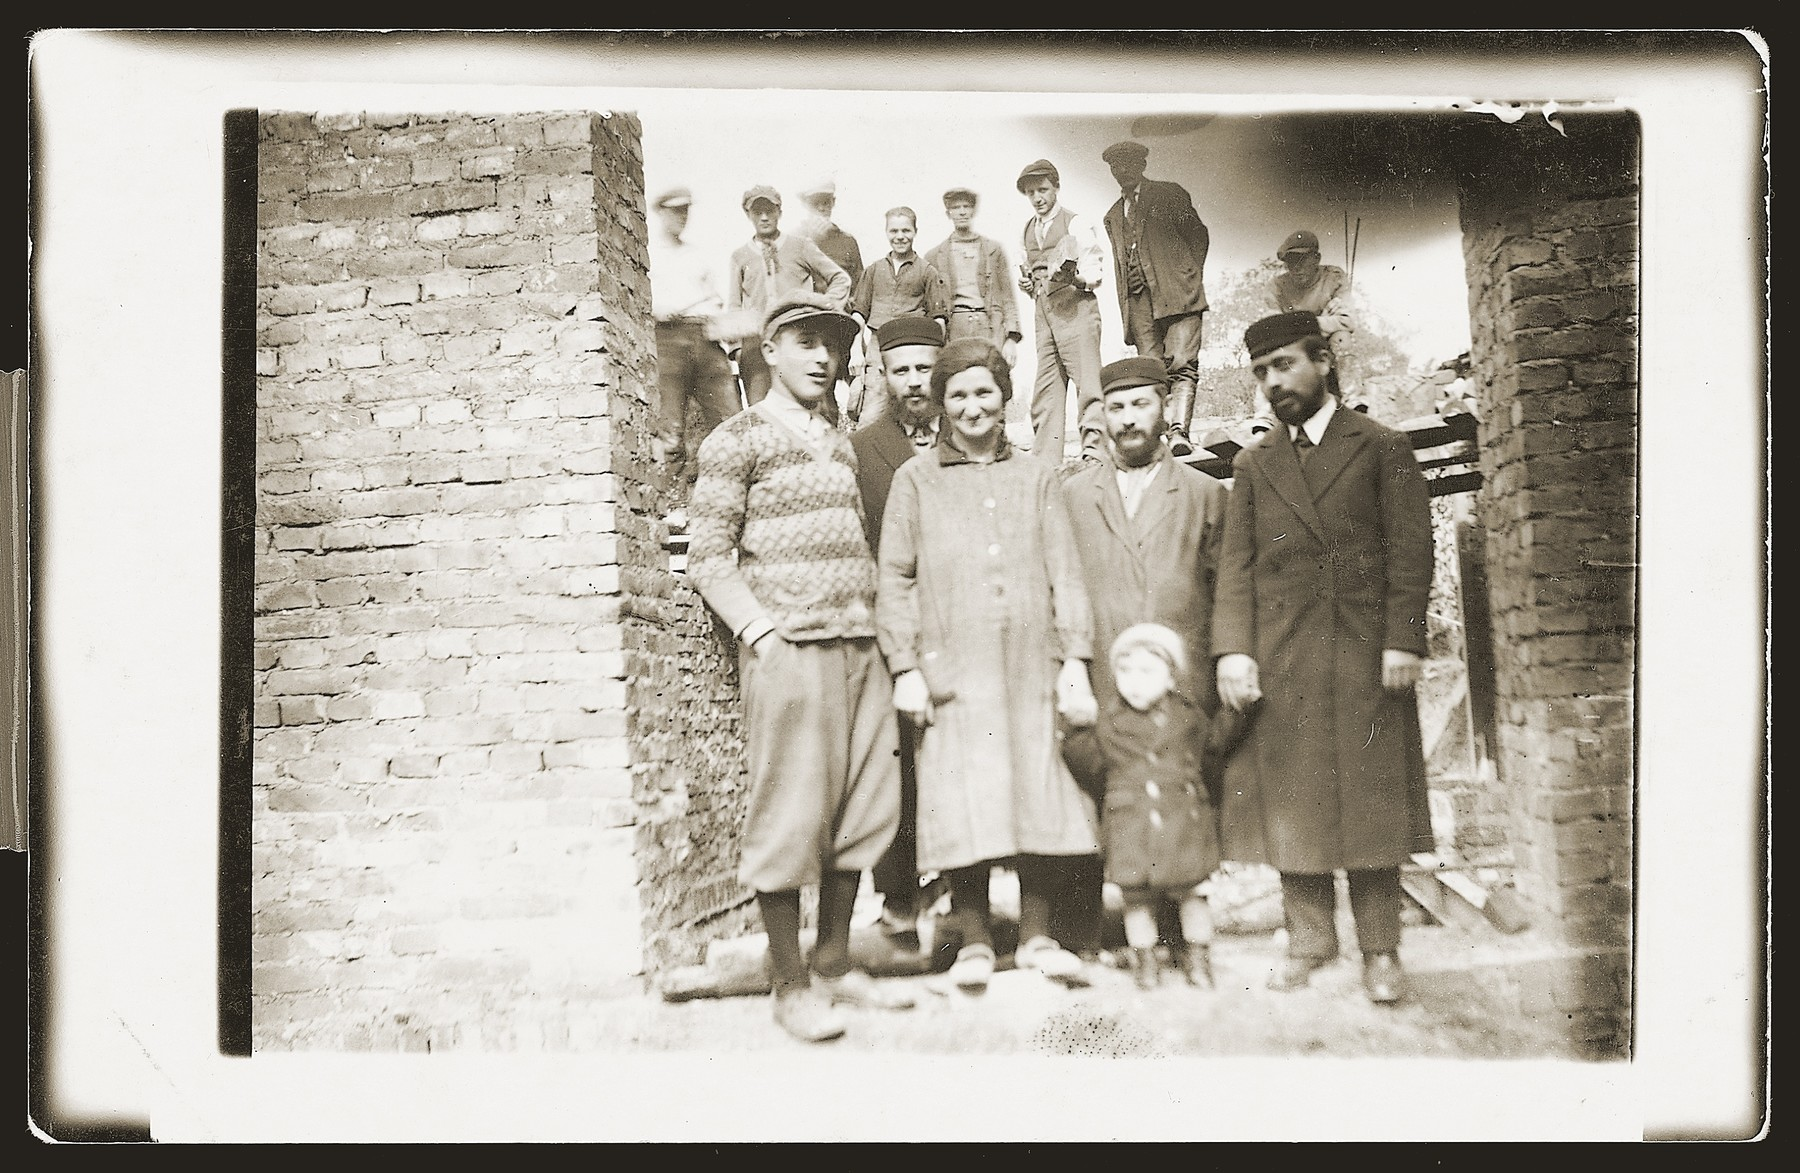 Members of the Gelbard family stand in the brick frame of a half-constructed building.  Among those pictured is Ita Gelbard.